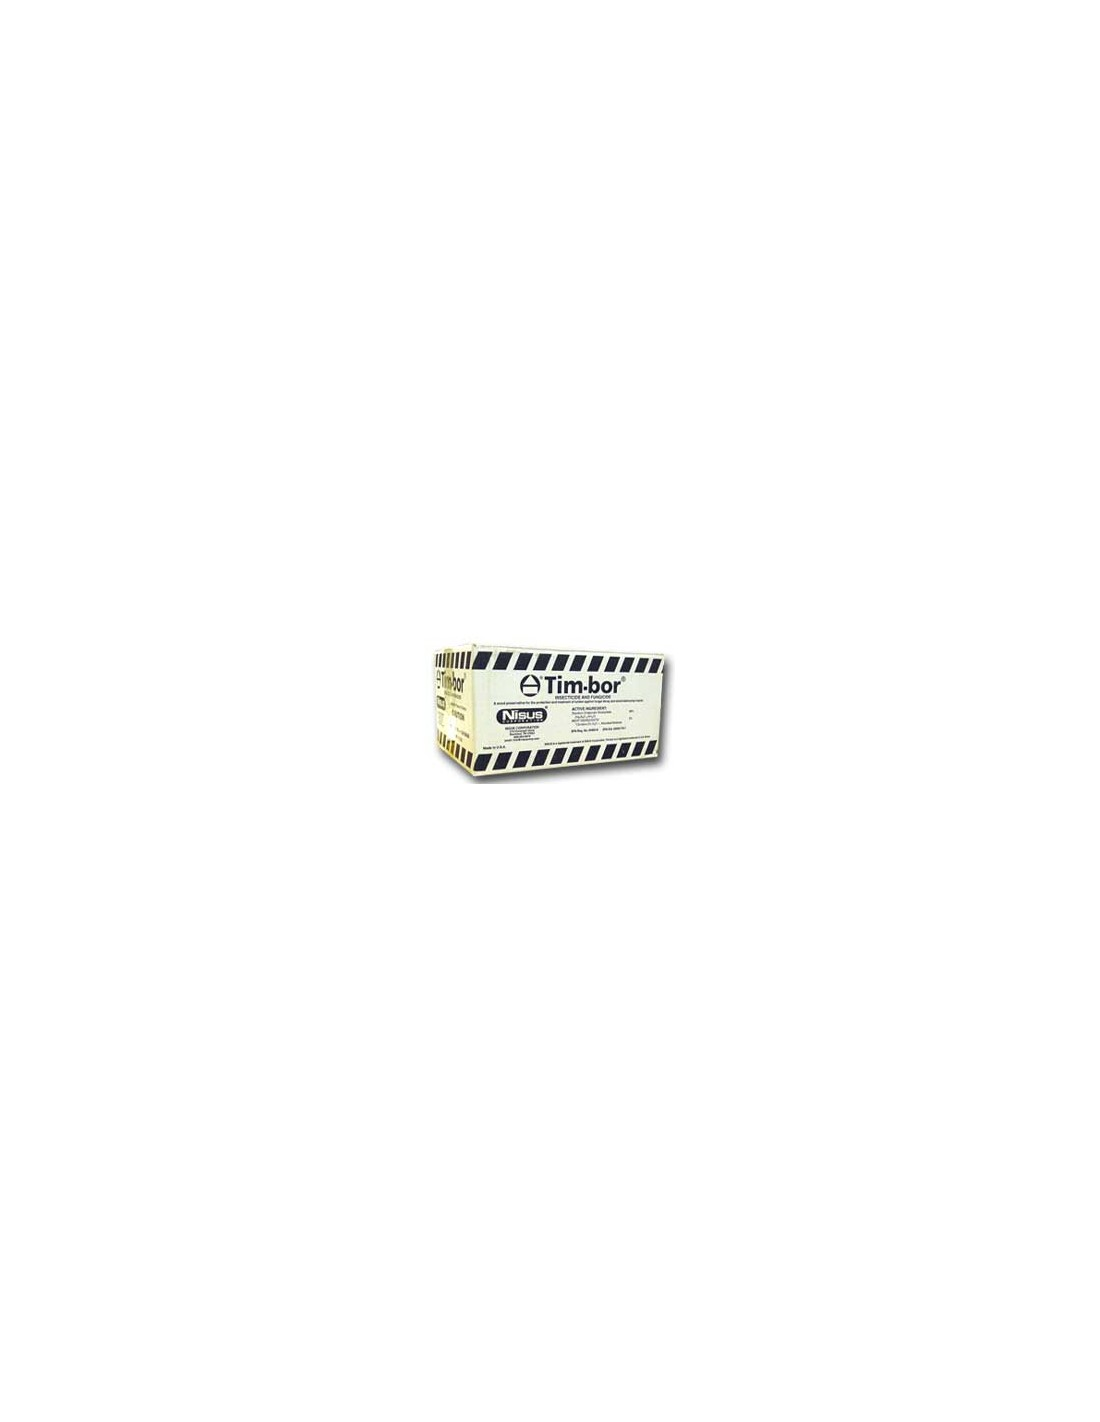 Tim bor Professional Insecticide and Fungicide Questions & Answers